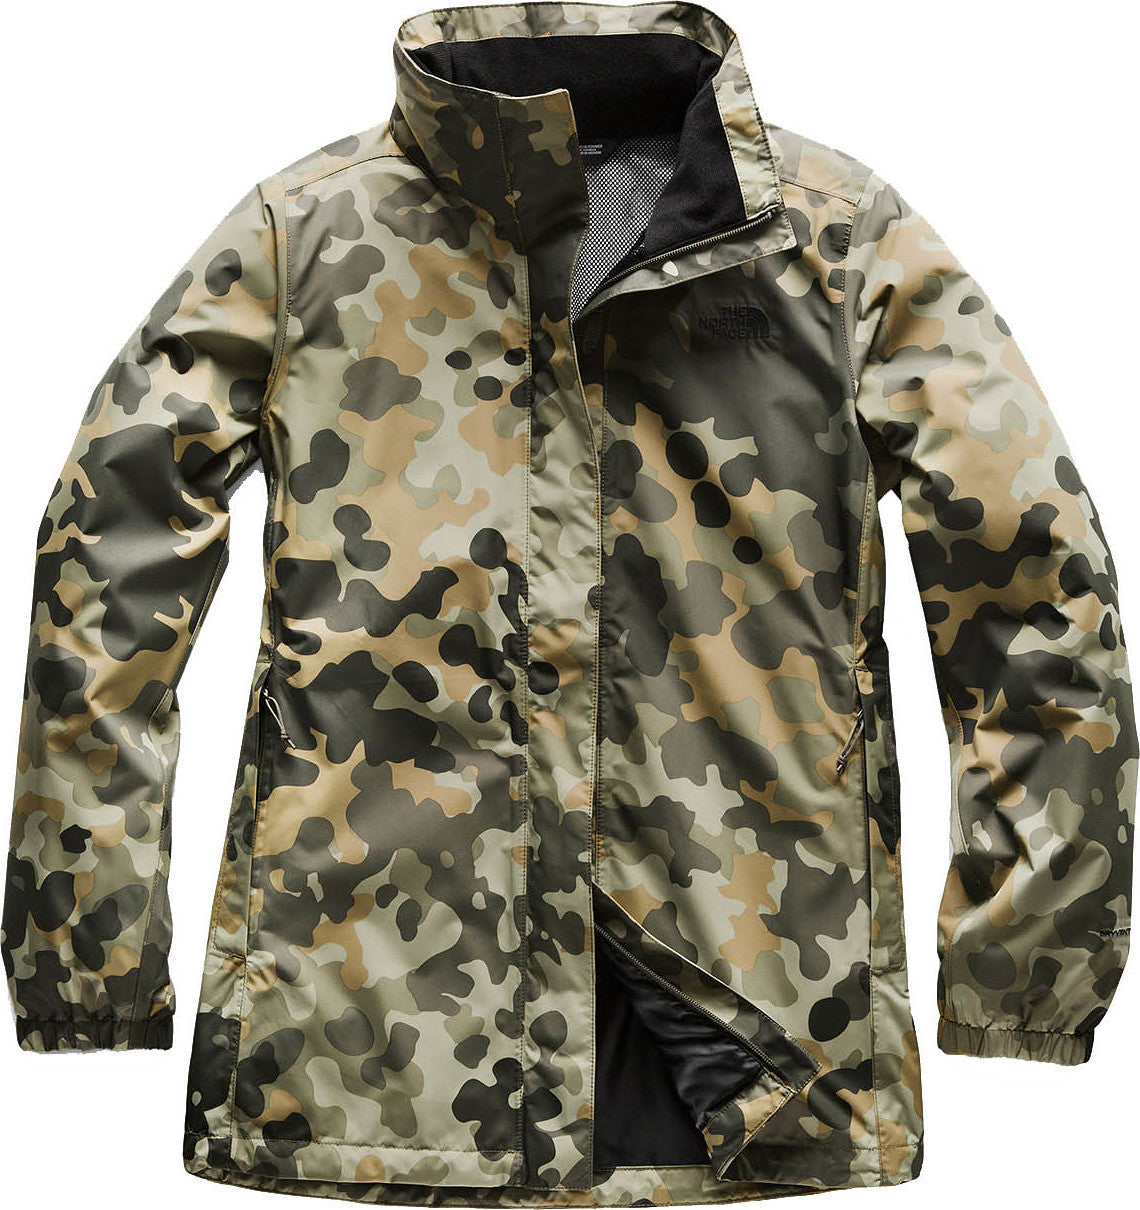 bc02f6afcf The North Face Resolve Parka - Women's | The Last Hunt